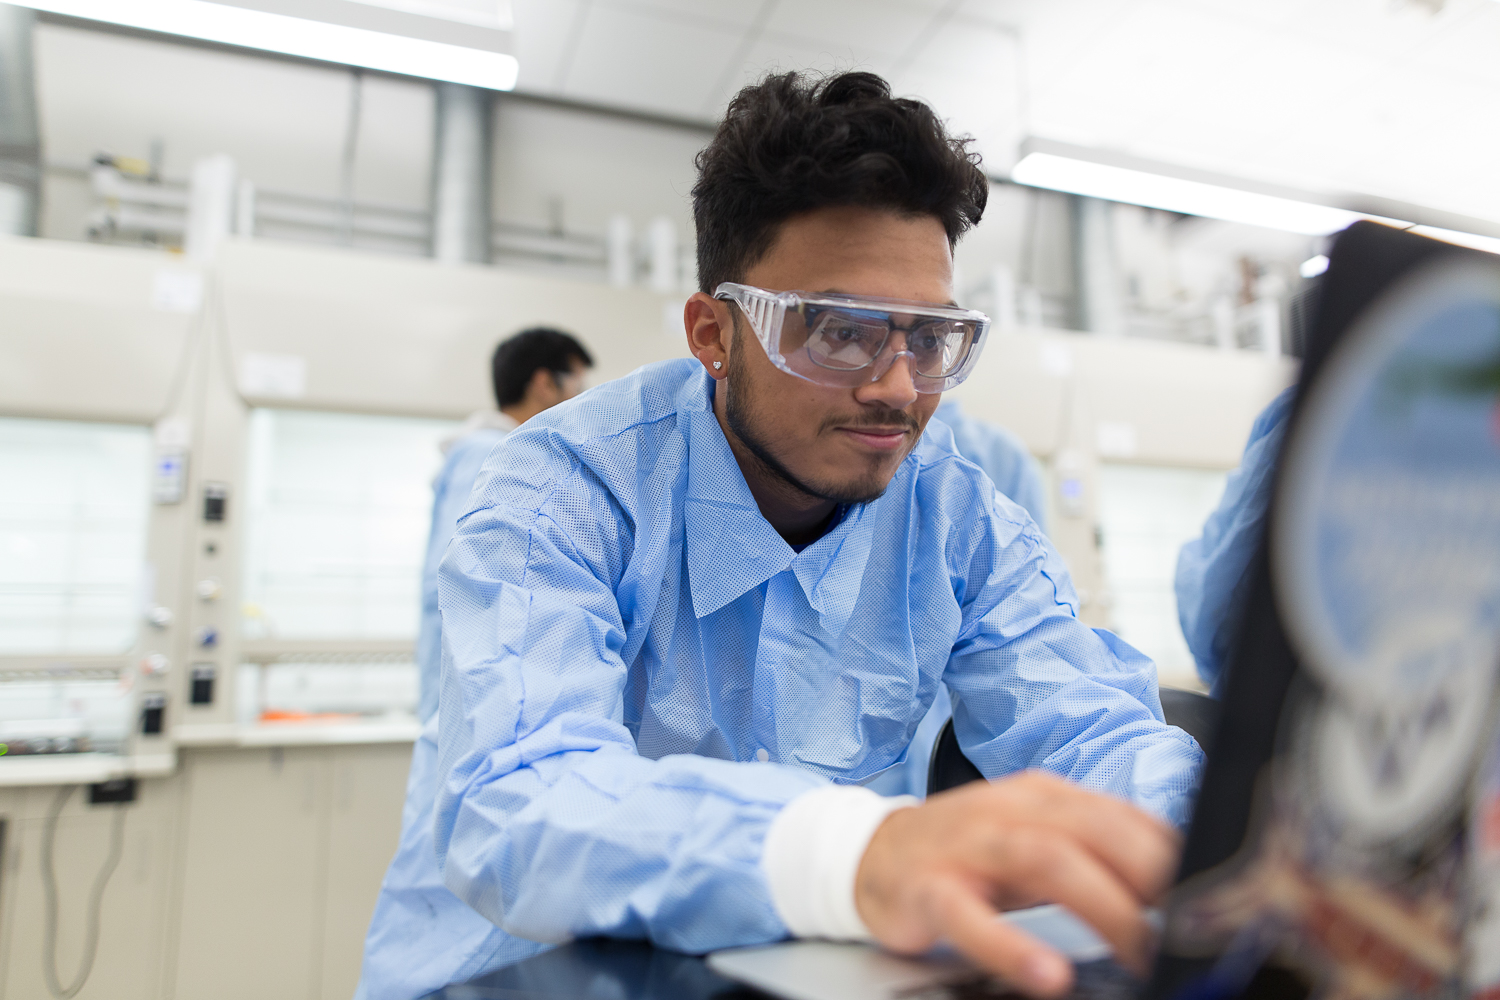 A close up of a student in the lab with protective glasses on.